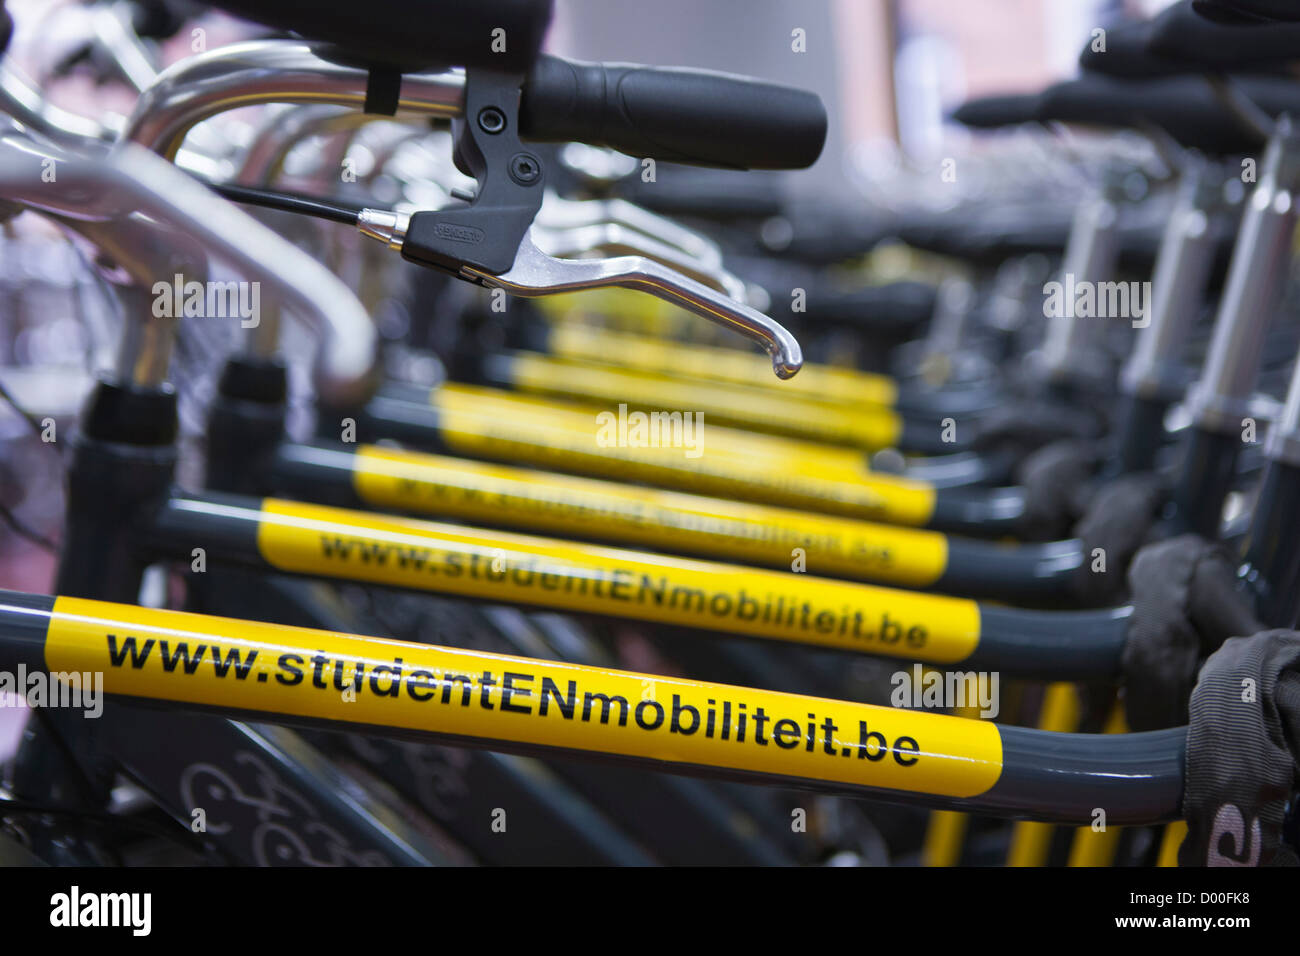 Student en Mobiliteit scheme. Students can hire a range of bicycles. Ghent, Belgium. - Stock Image